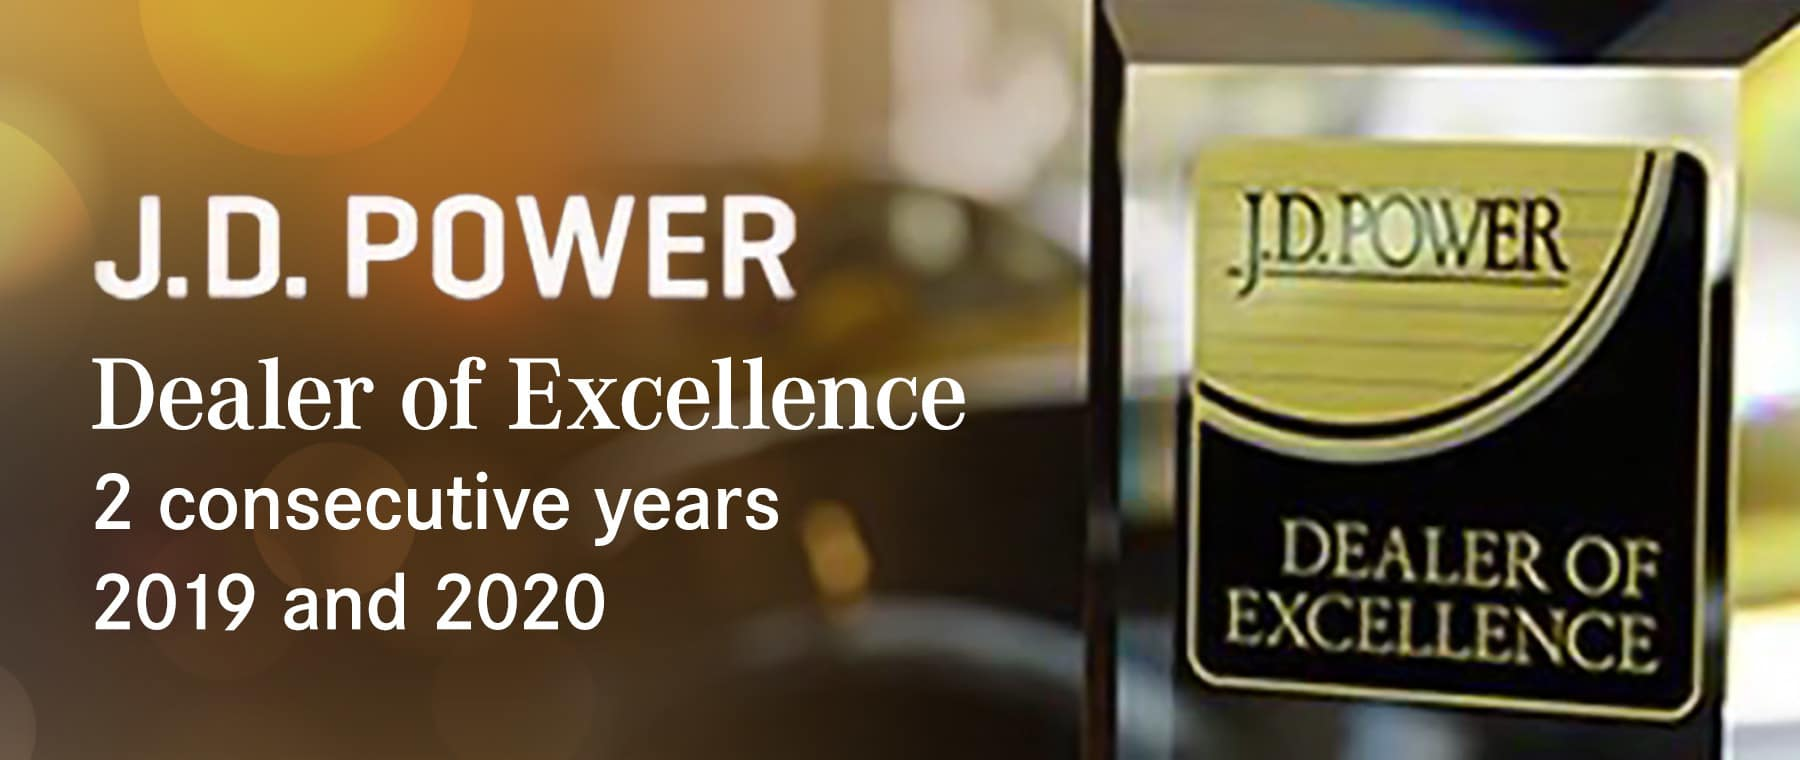 MBBH_JDPower_DealerOfExcellence_1800x760